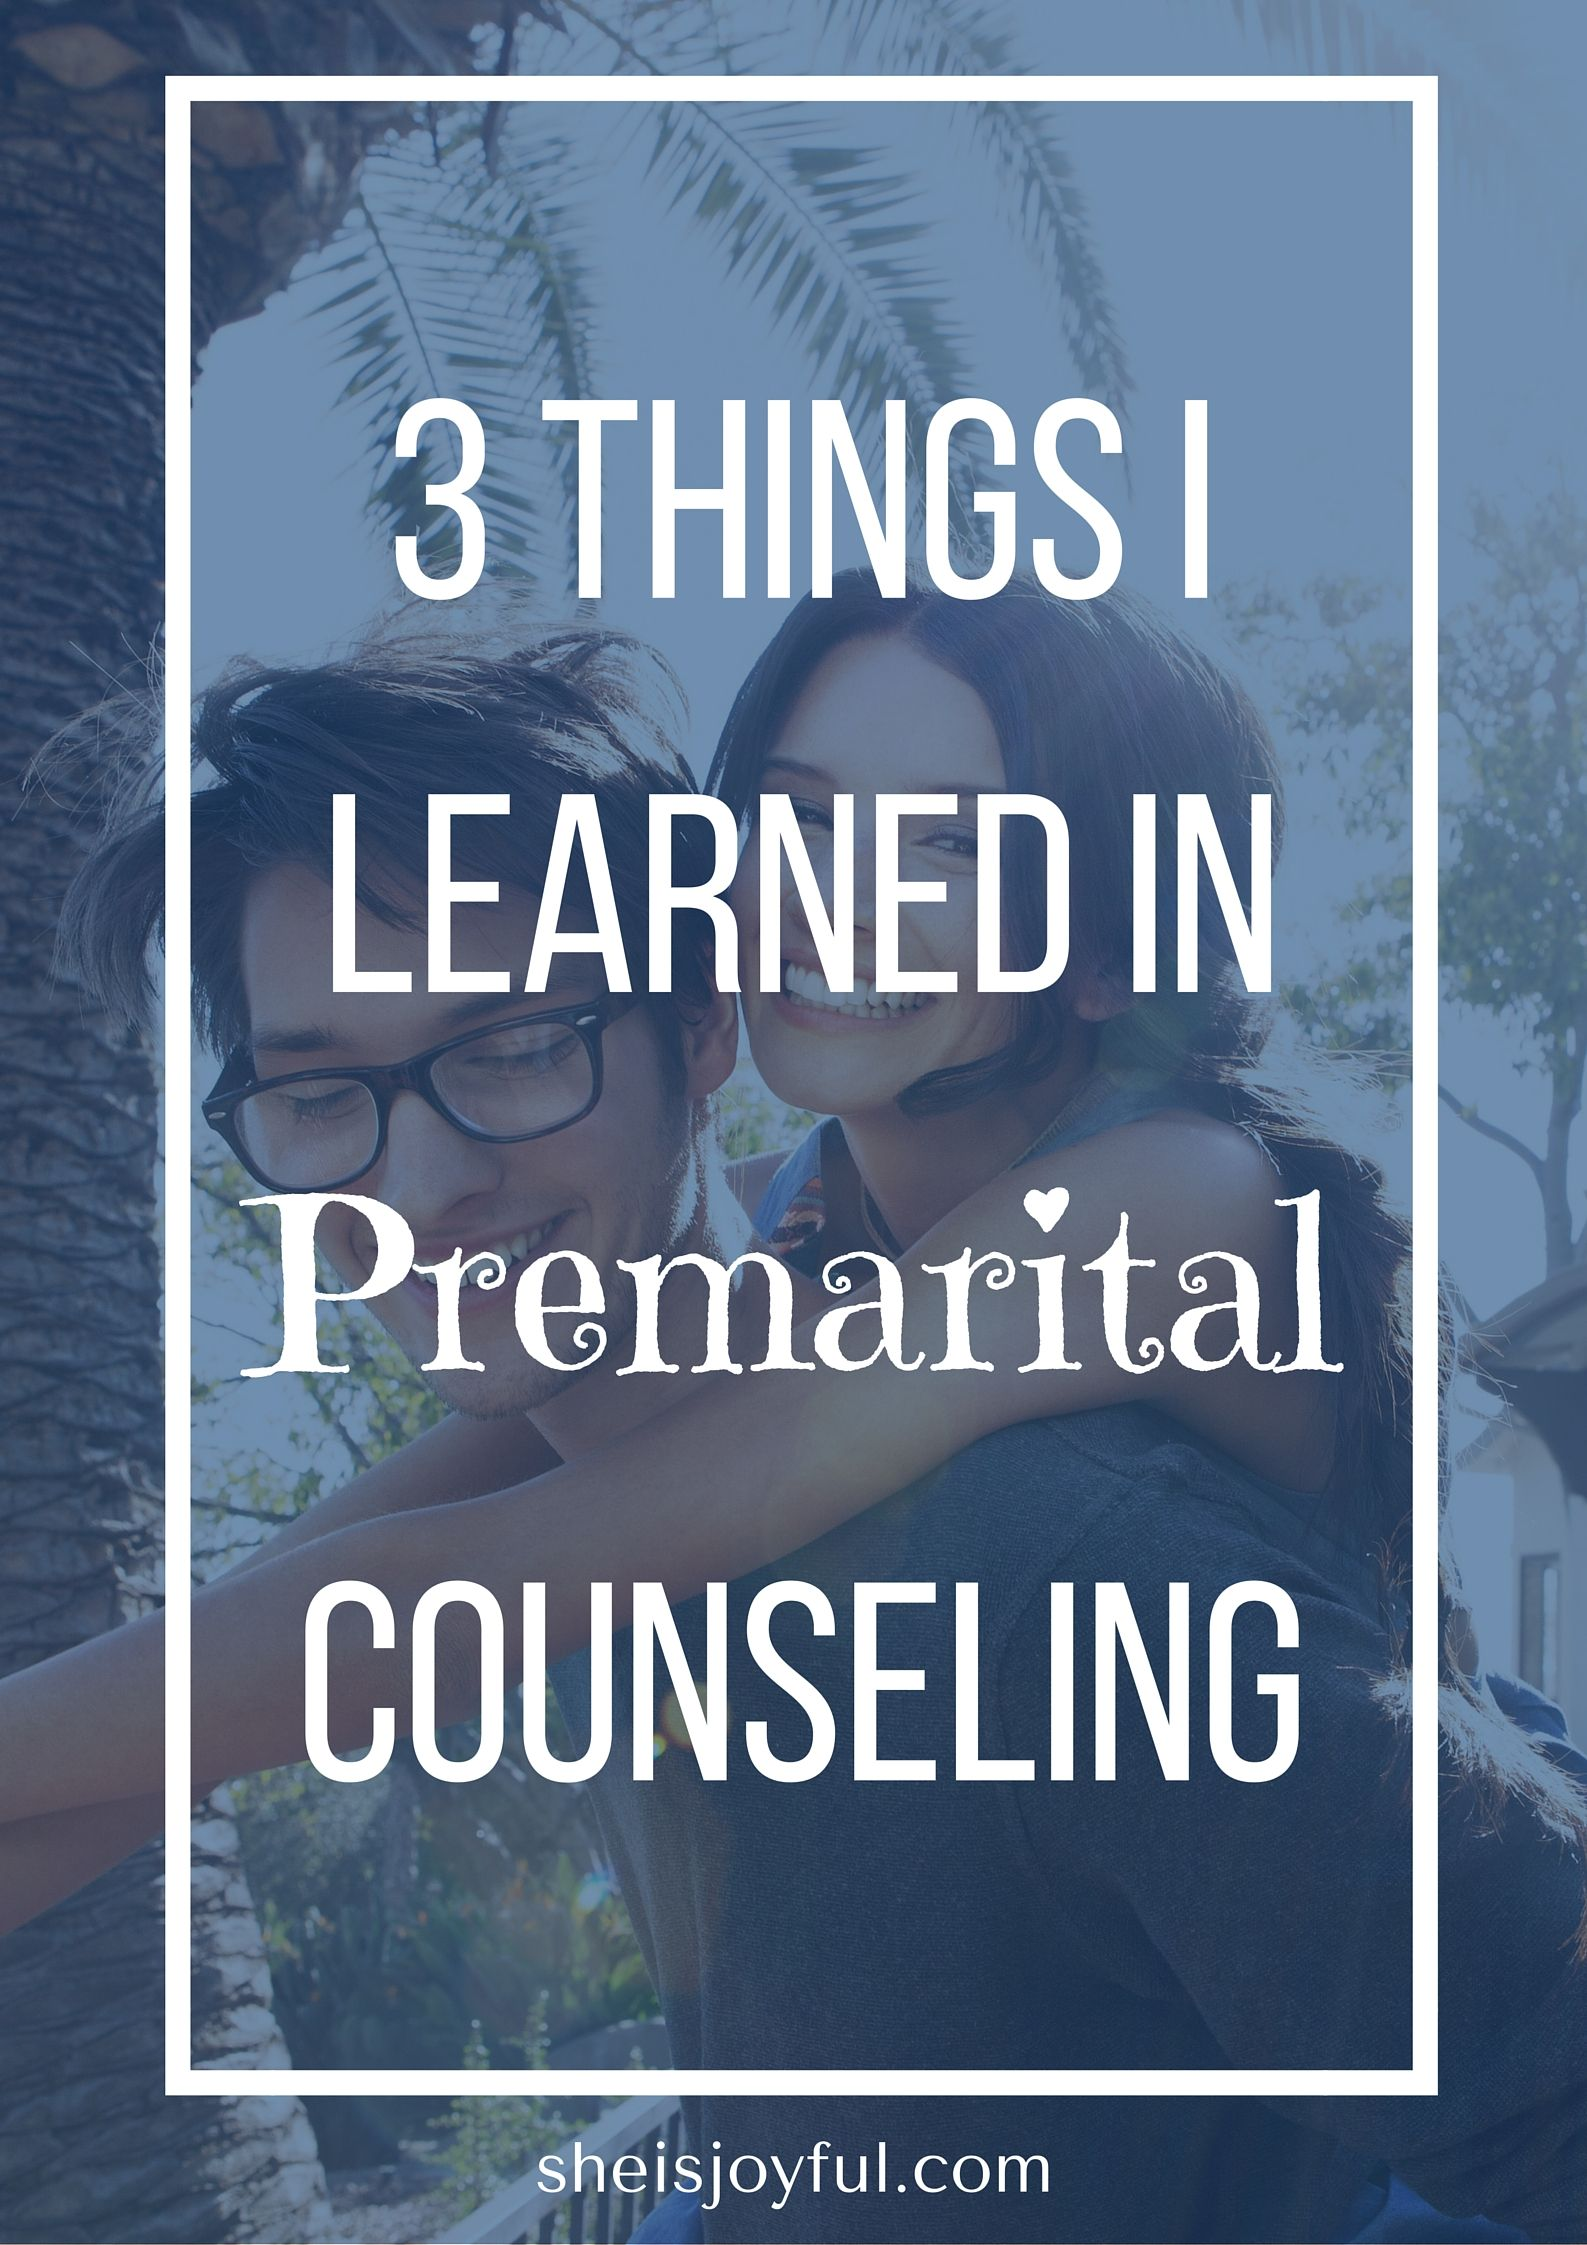 3 Things I Learned In Premarital Counseling